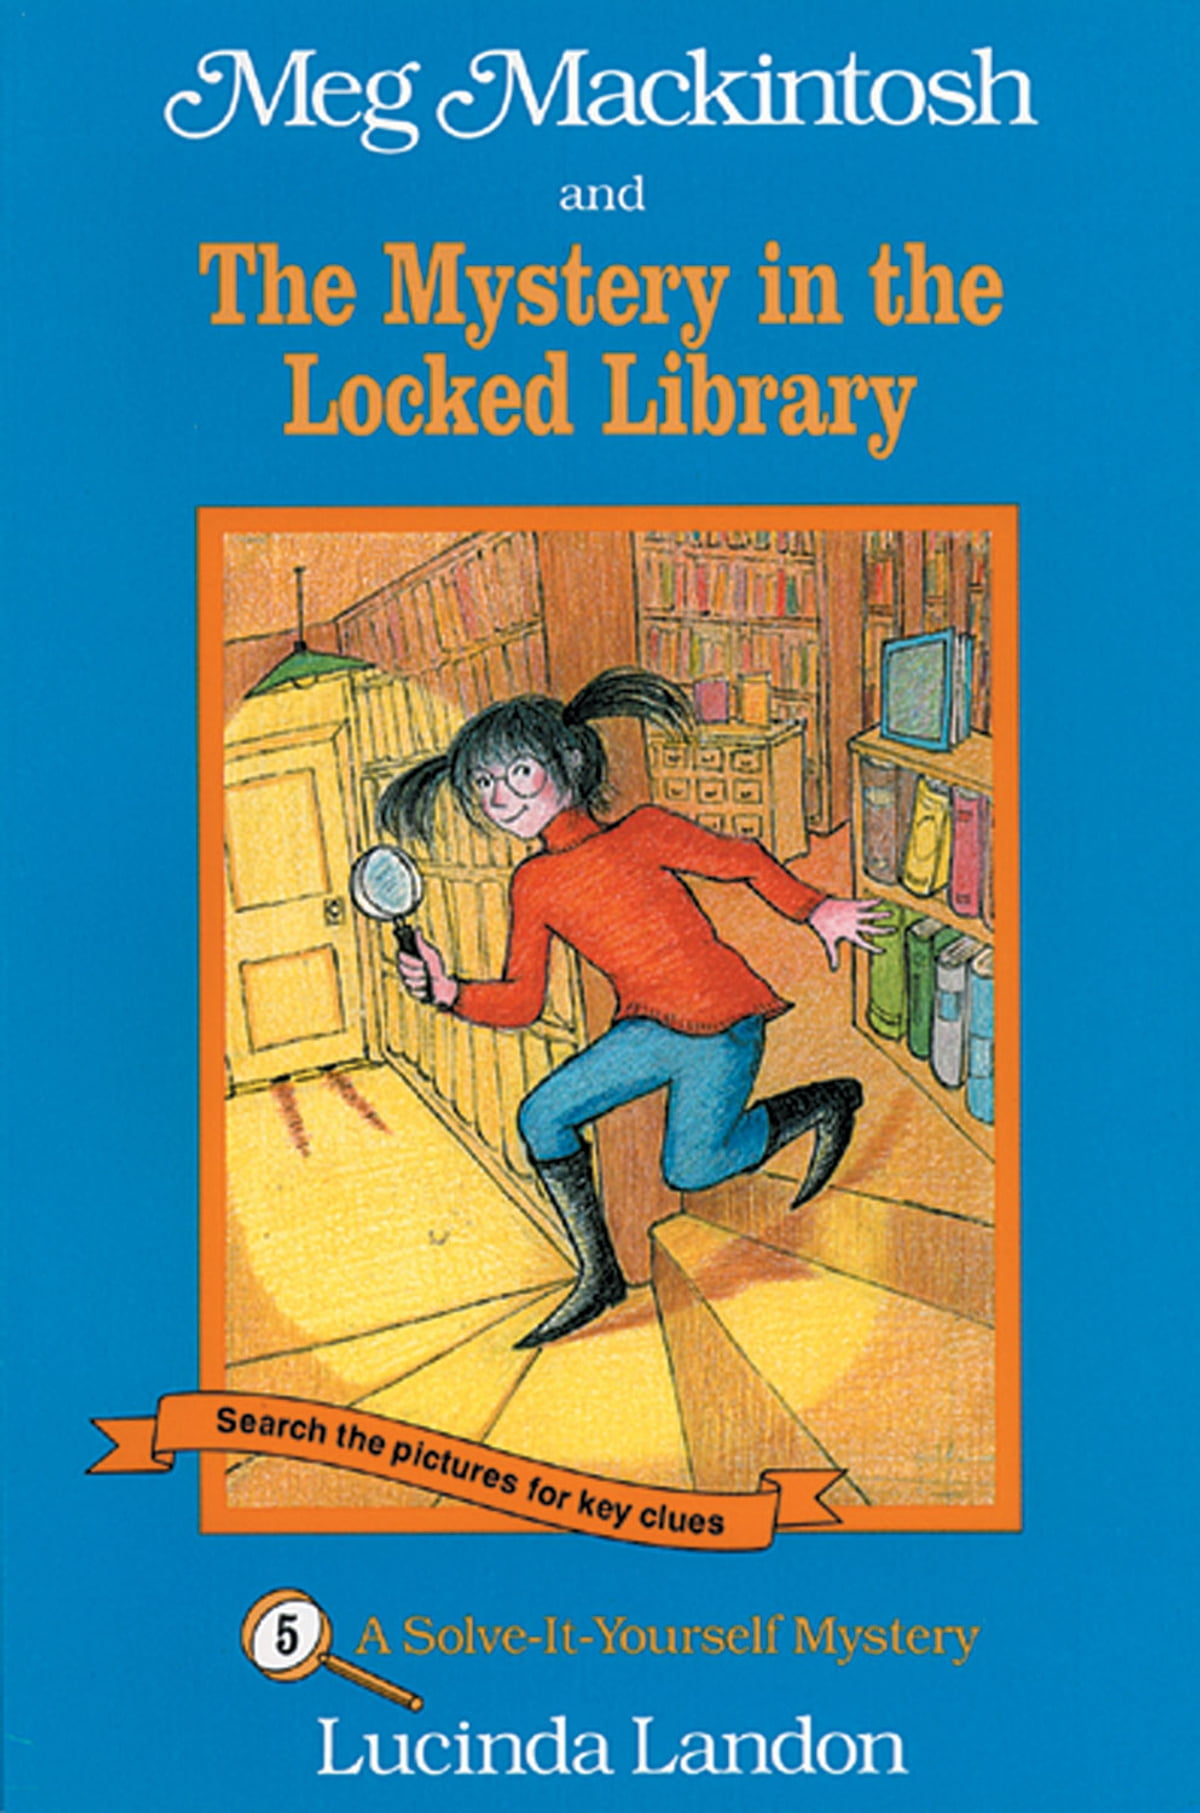 Meg mackintosh and the mystery in the locked library ebook by meg mackintosh and the mystery in the locked library ebook by lucinda landon 9781888695298 rakuten kobo fandeluxe PDF